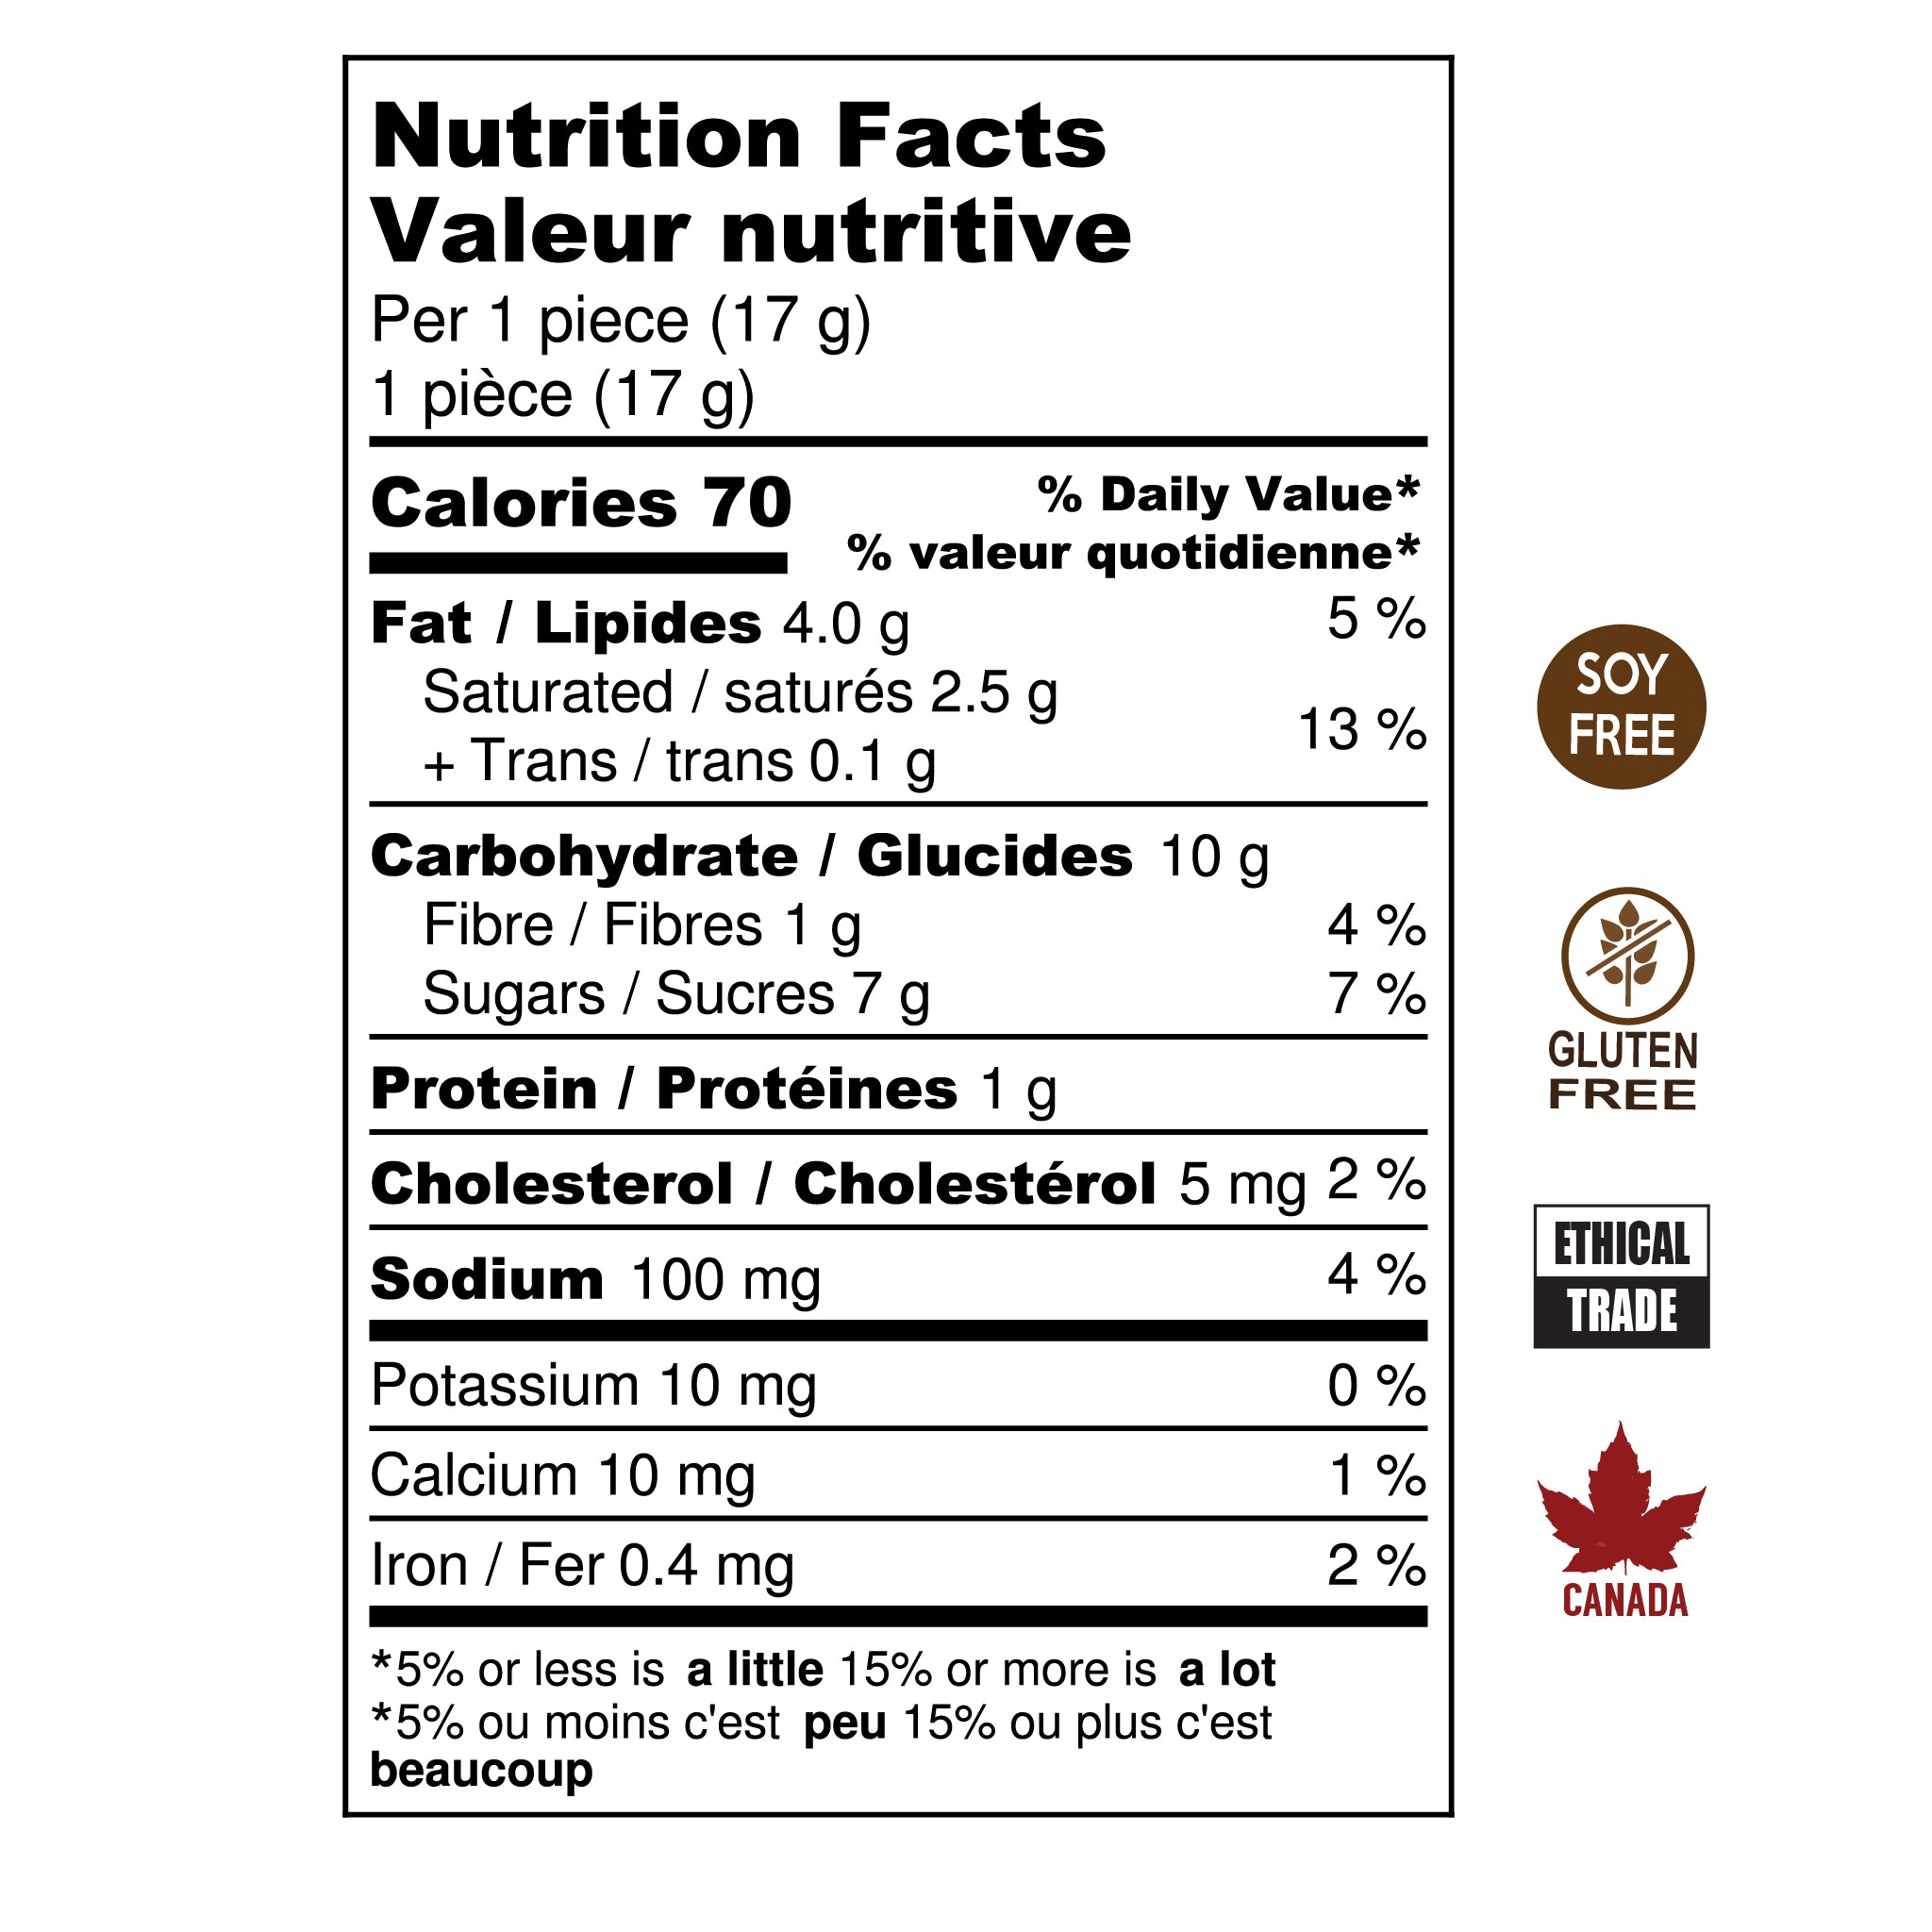 Hummingbird Chocolate Salted Caramel Nutrition Facts. Soy Free, Gluten Free, Ethical Trade, Made in Canada.